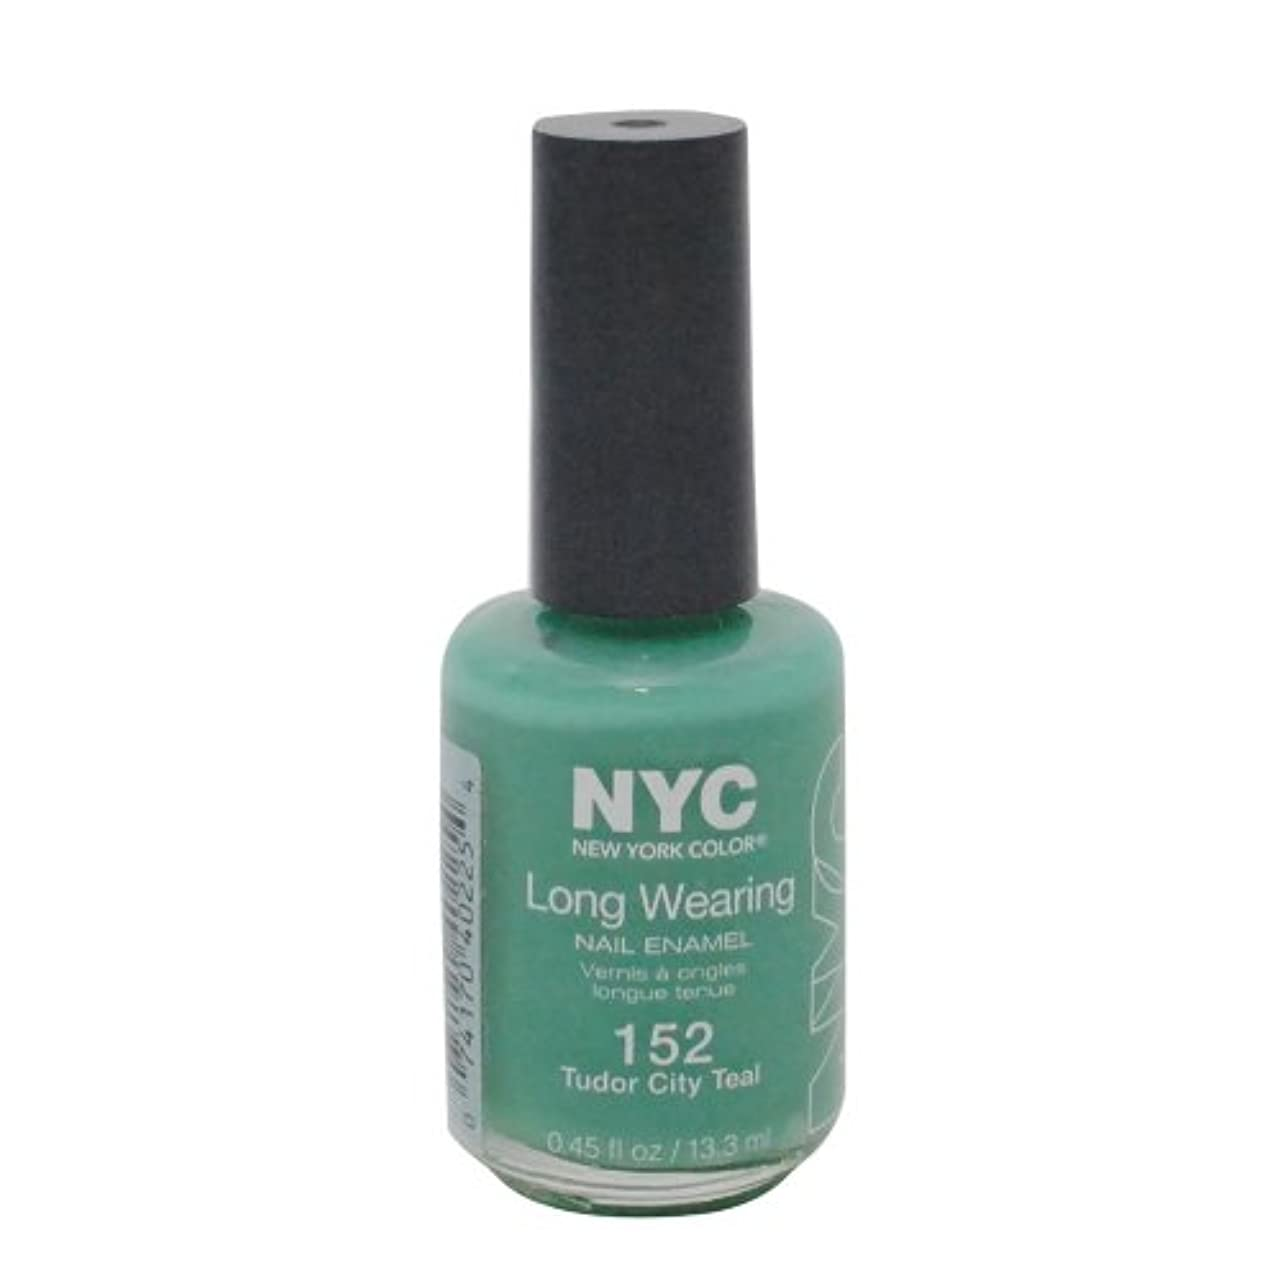 友だち文団結するNYC Long Wearing Nail Enamel - Tudor City Teal by NYC New York Color